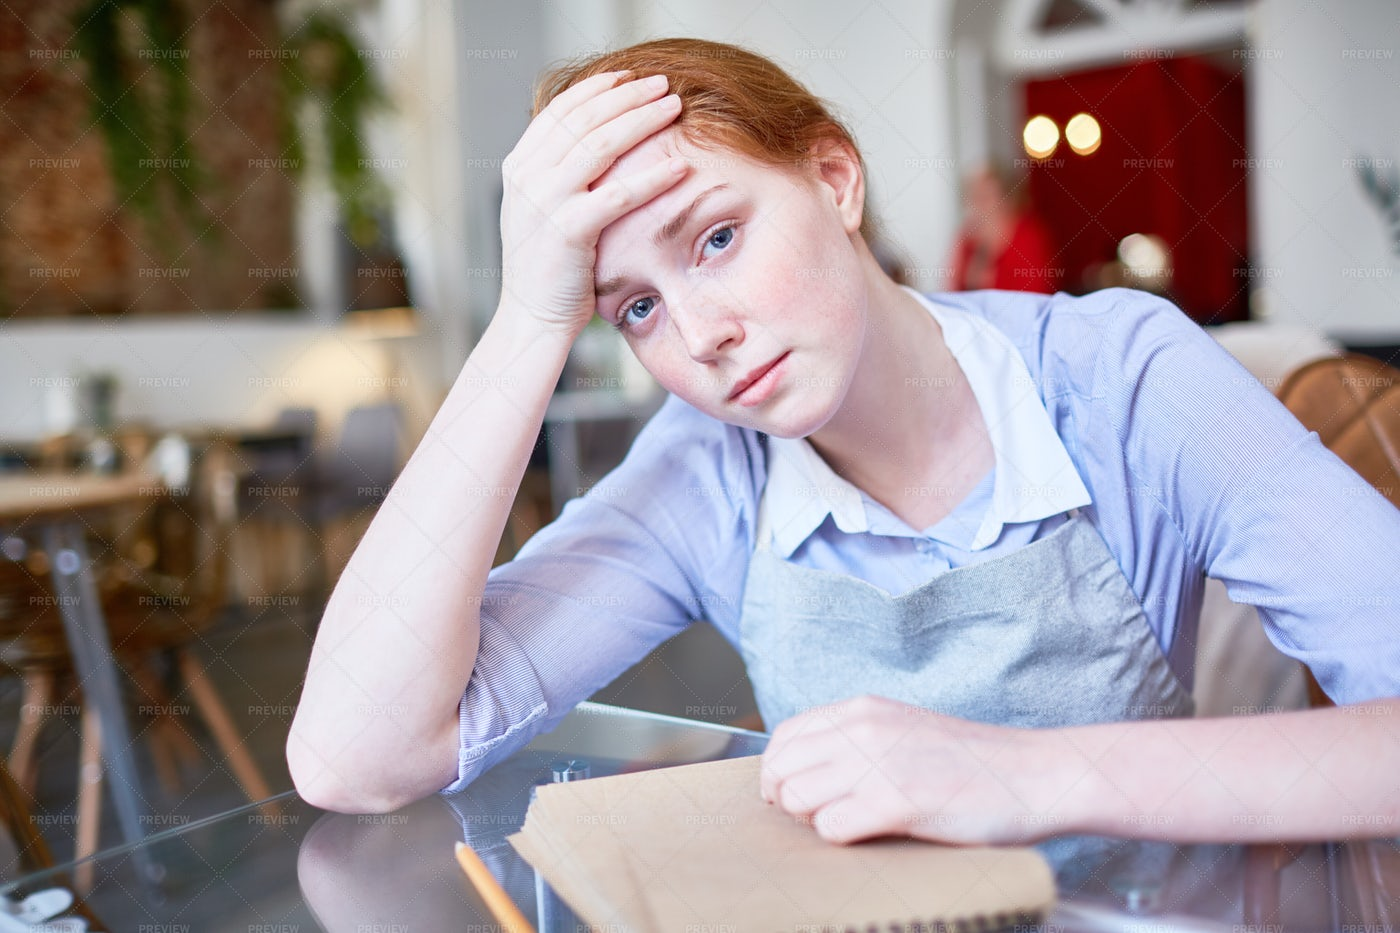 Exhausted After Work: Stock Photos